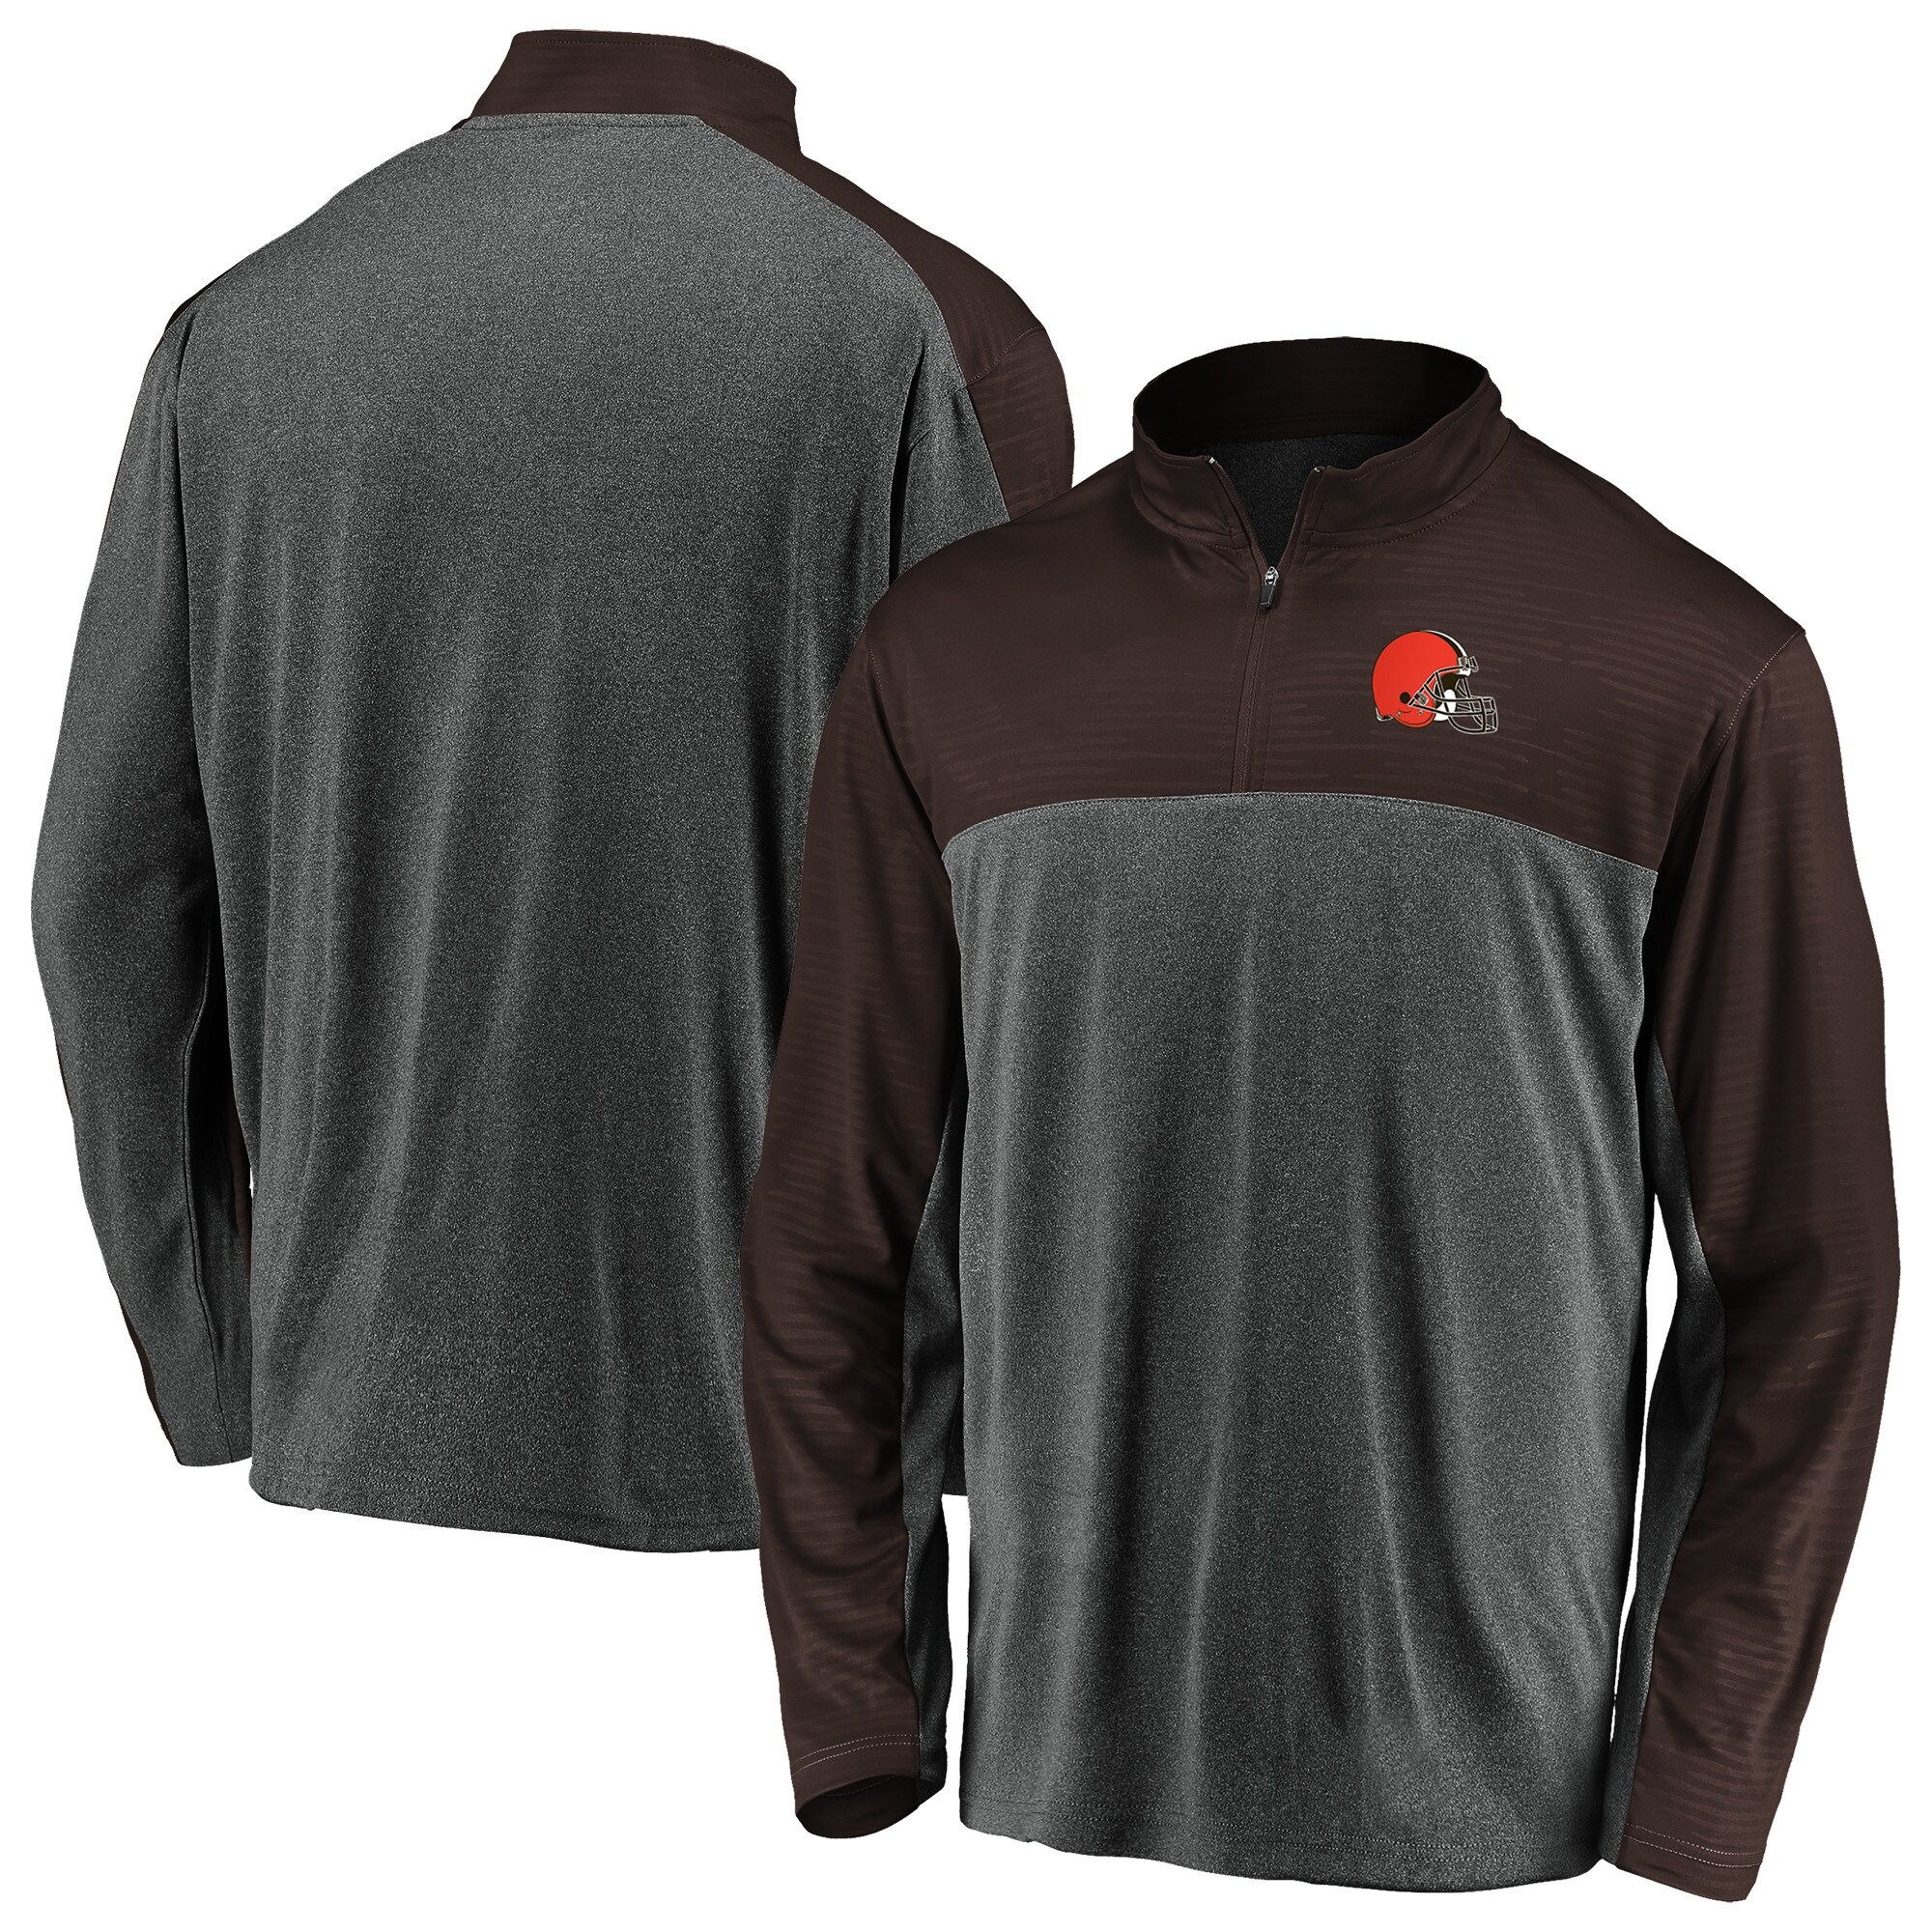 Cleveland Browns NFL Pro Line by Fanatics Branded Colorblock Quarter-Zip Pullover Jacket - Charcoal/Brown